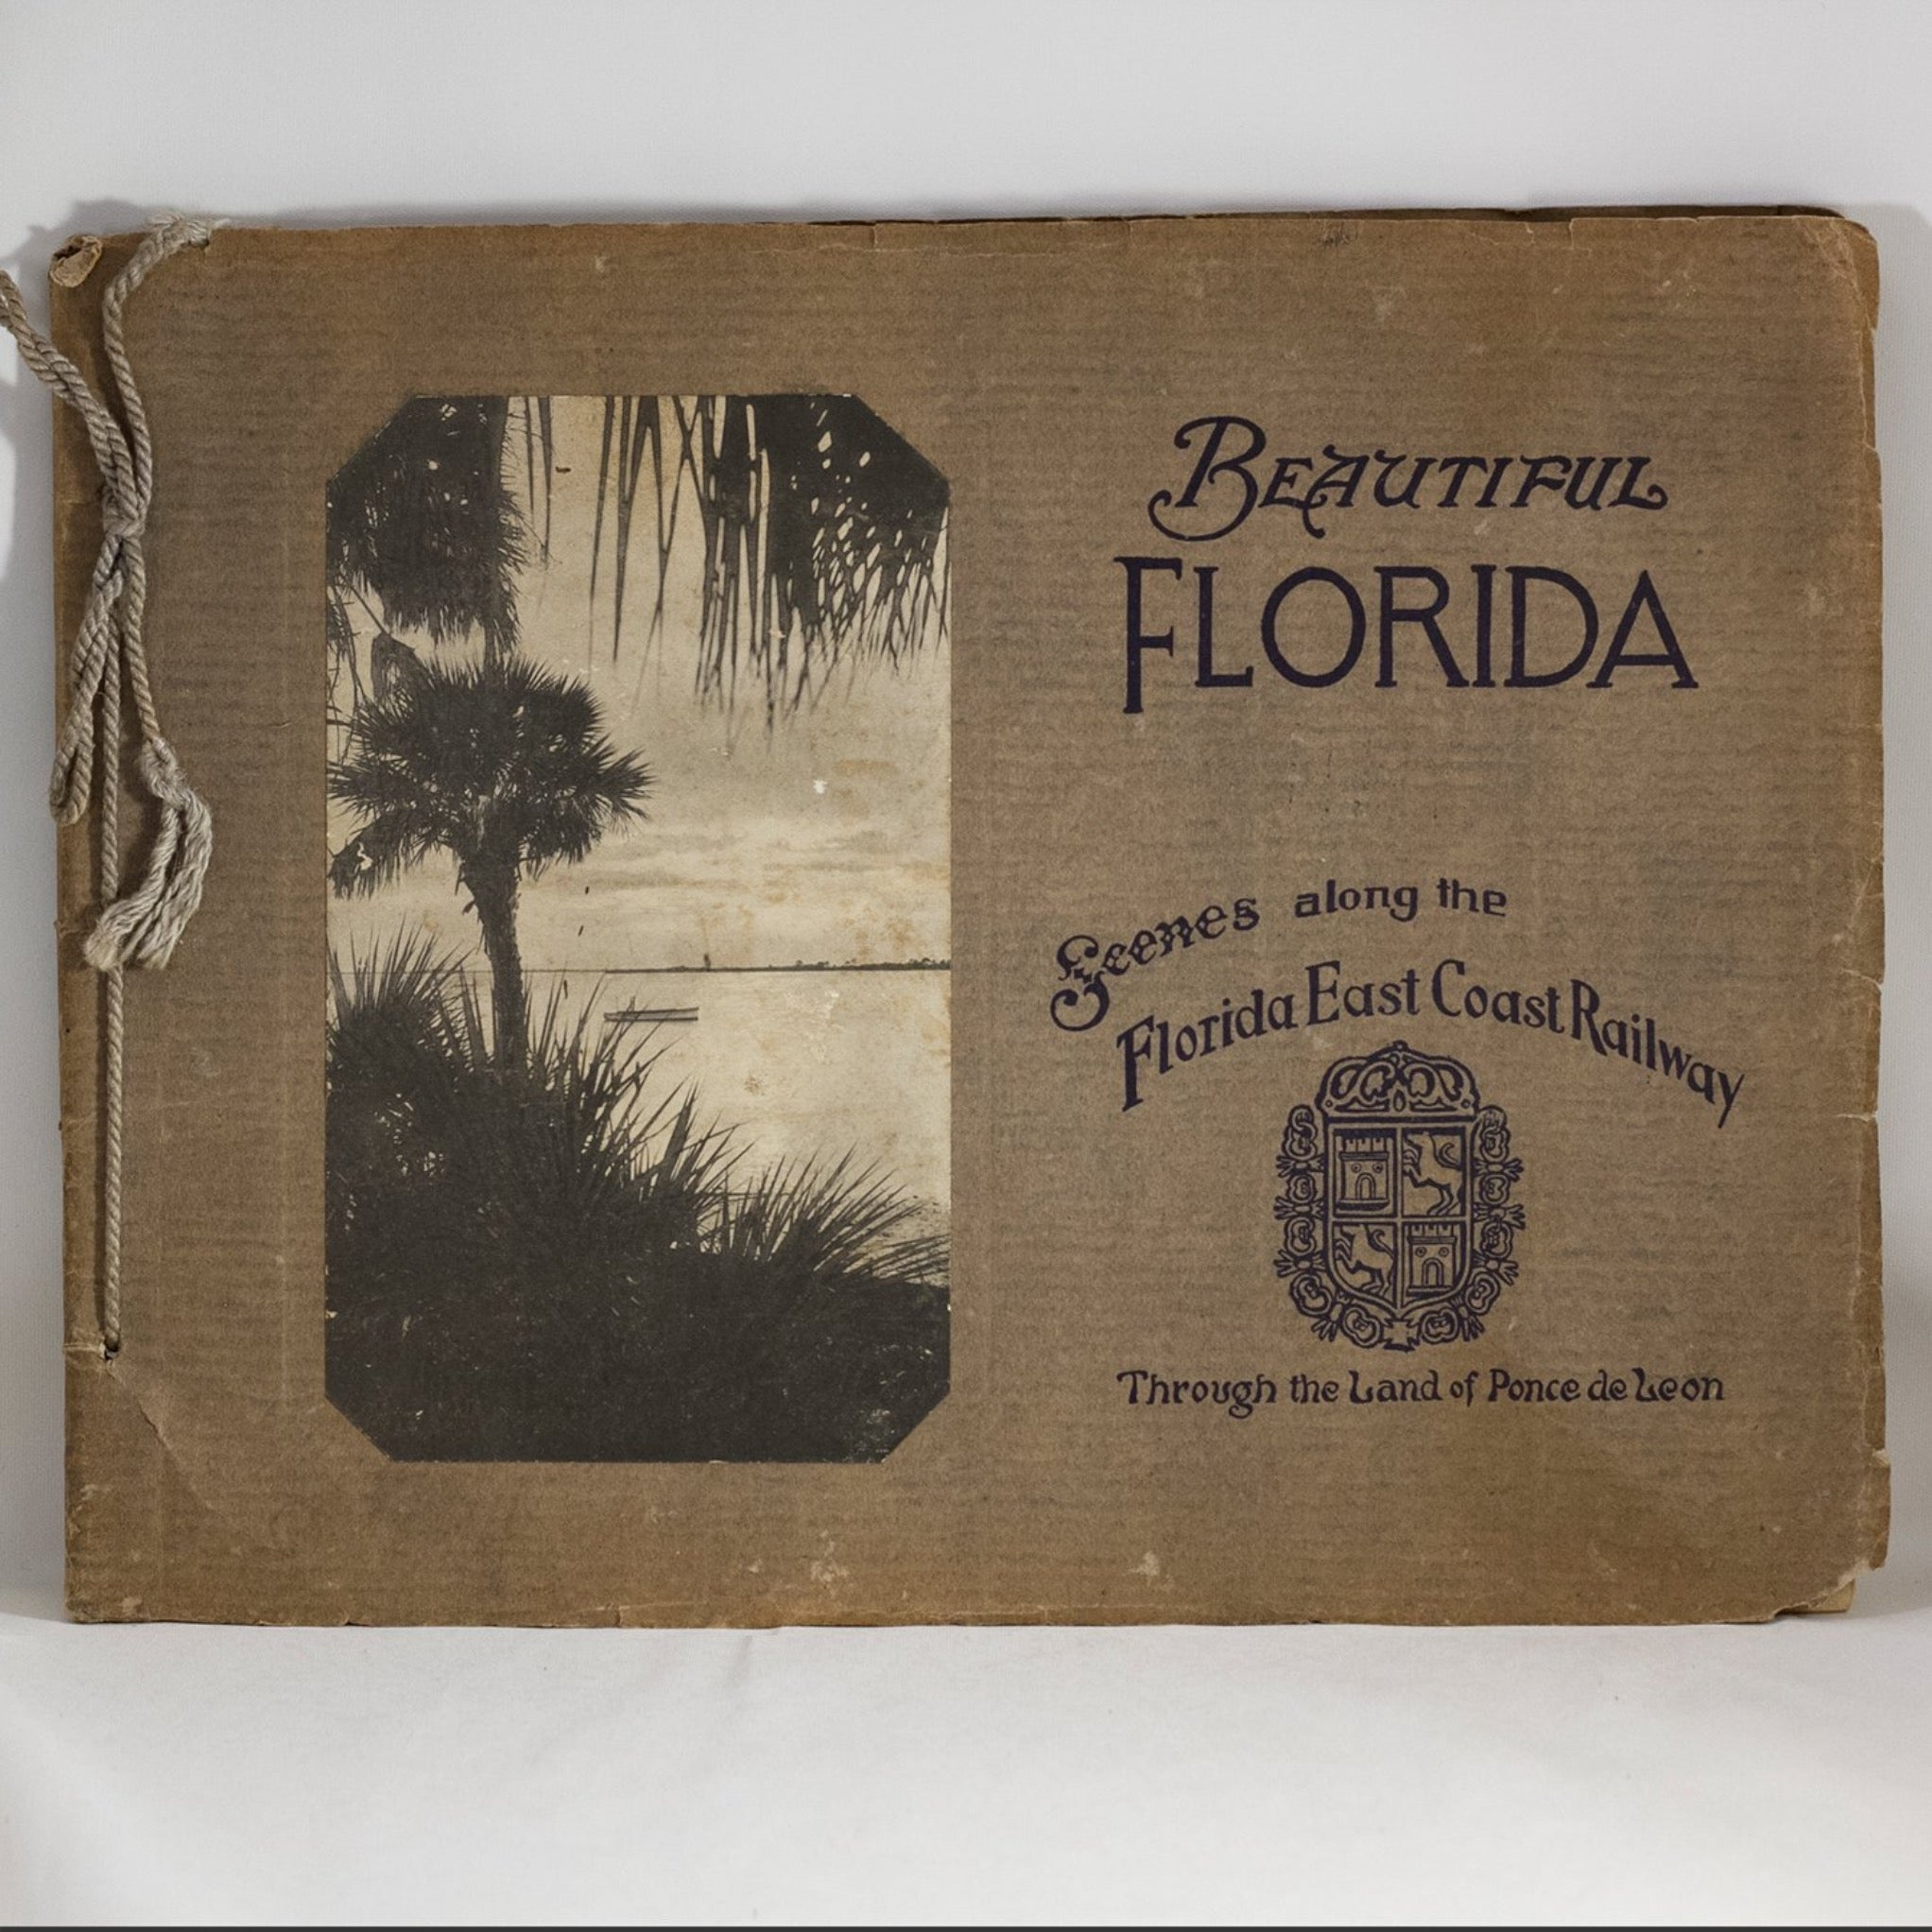 "Antique Scenic Guidebook"" BEAUTIFUL FLORIDA--Scenes along the Florida East Coast Railway--Through the Land of Ponce de Leon"" Circa 1916"